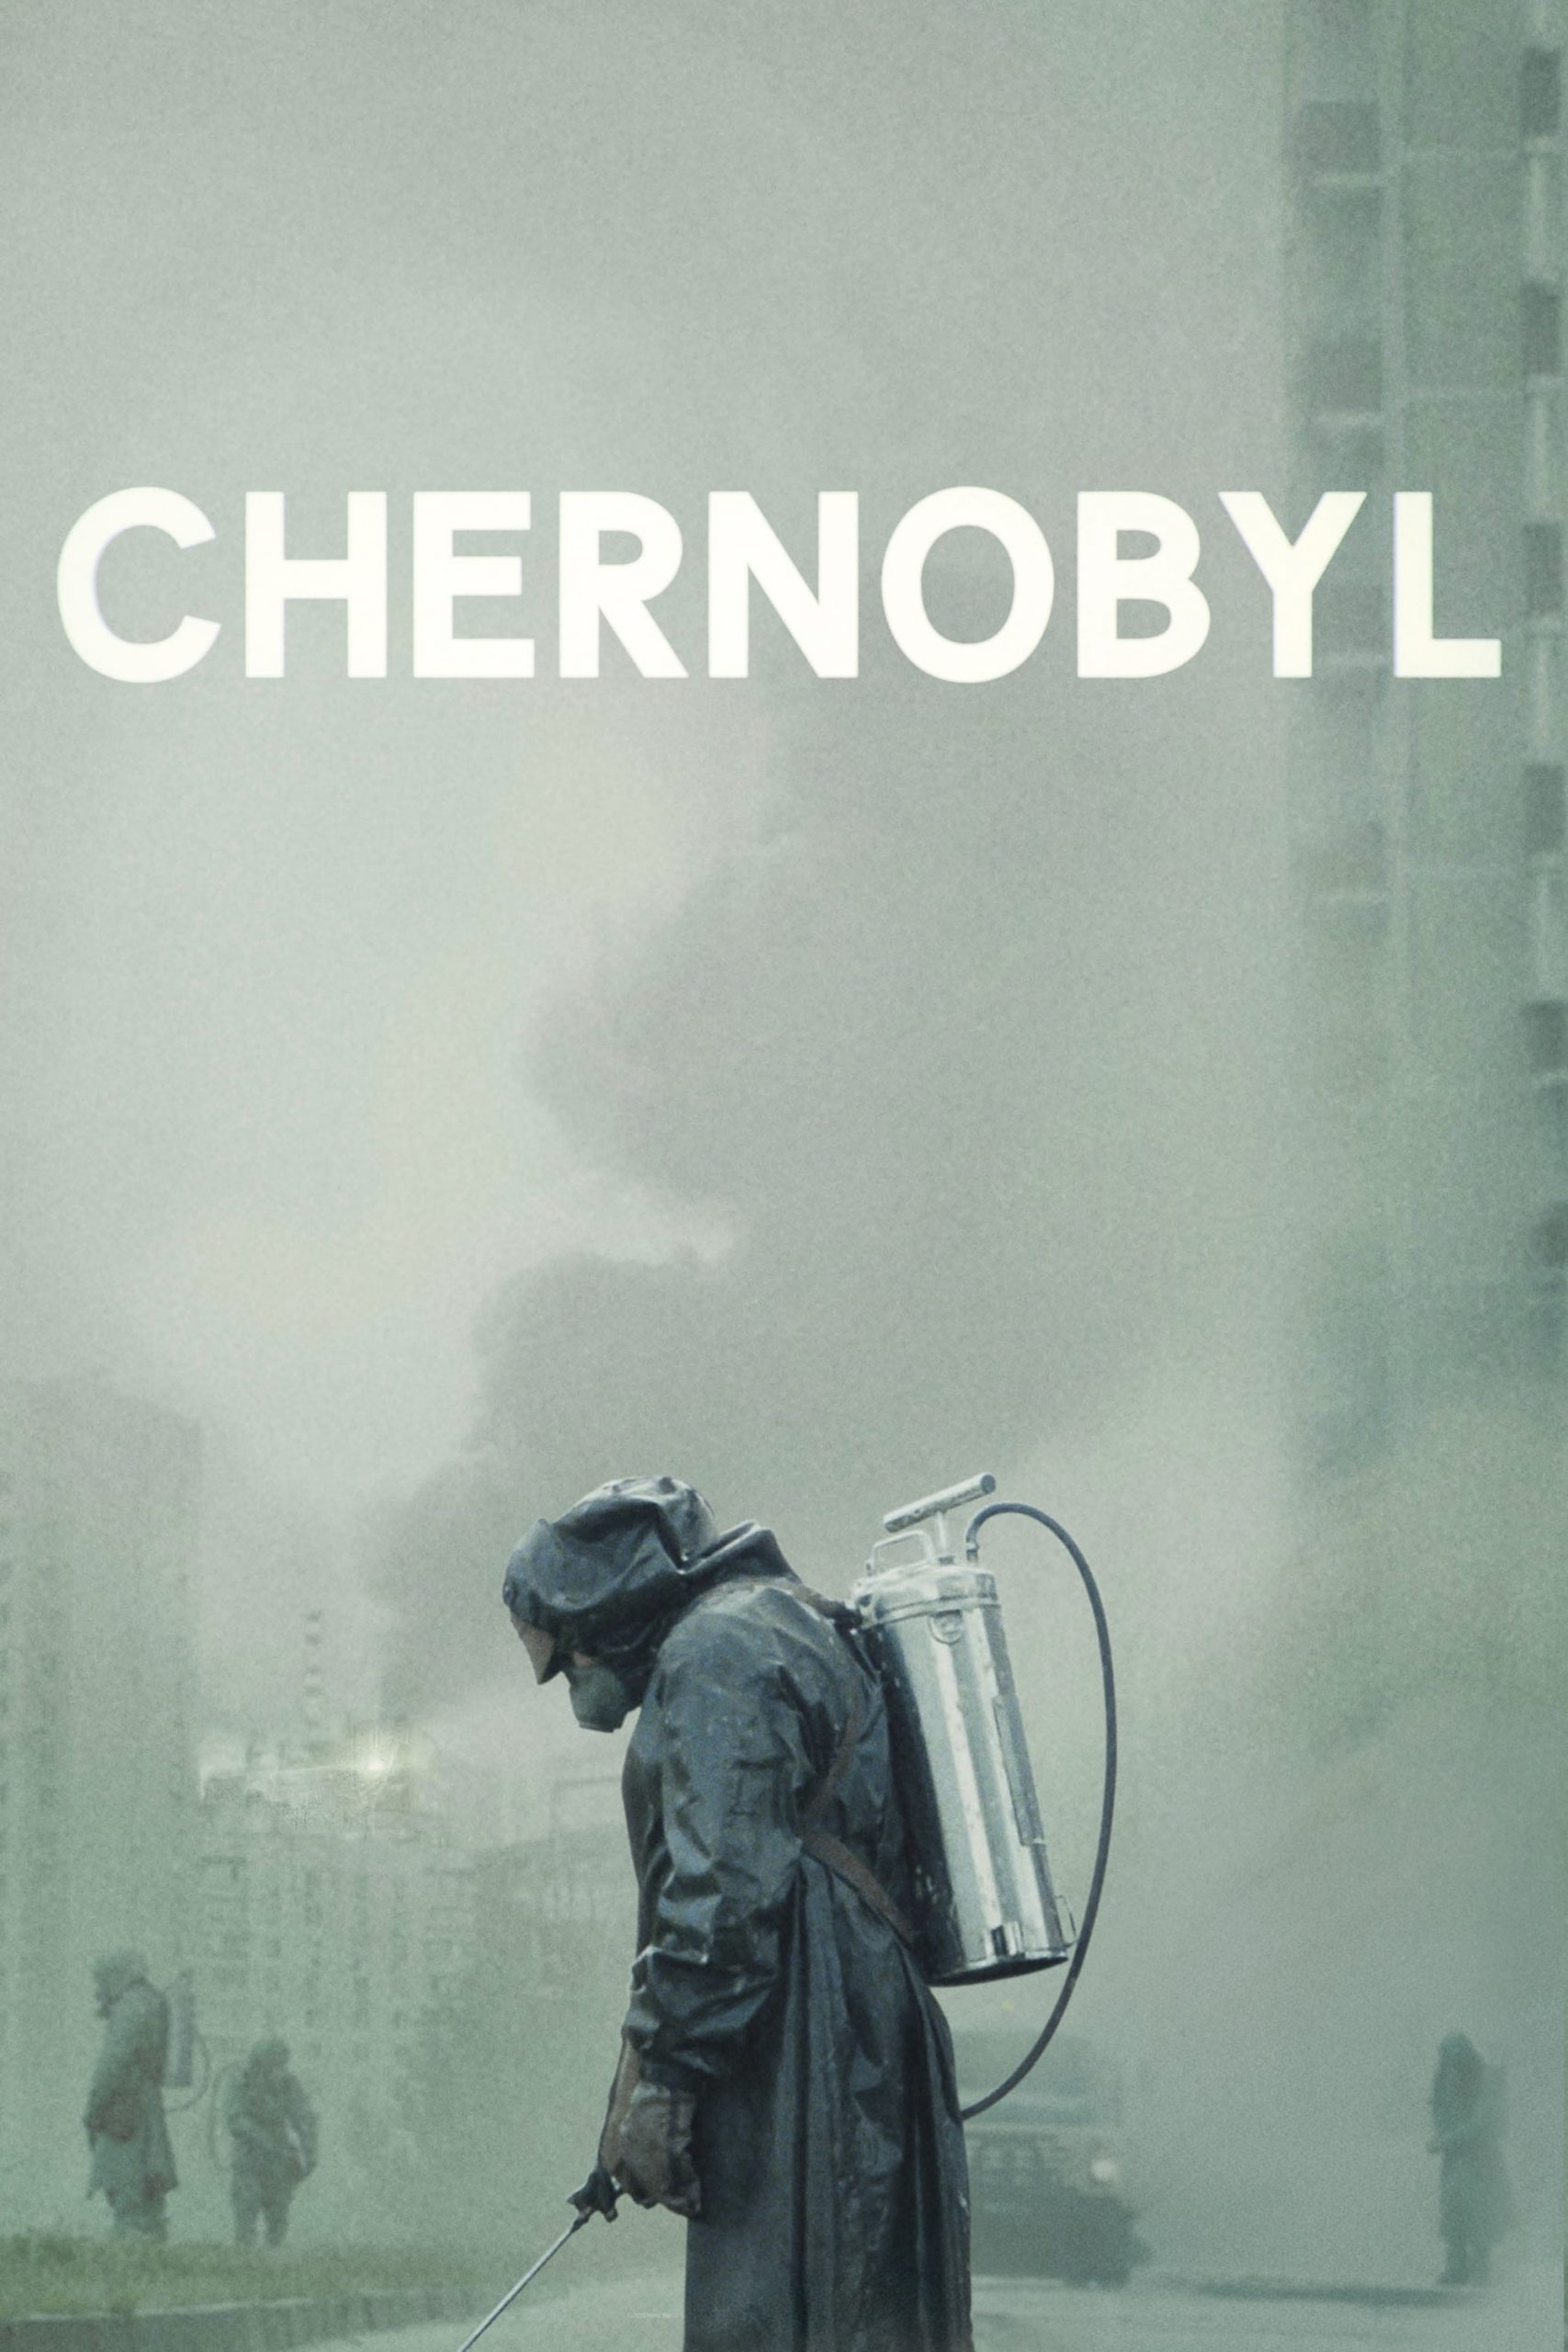 Chernobyl S1(2019) Subtitle Indonesia